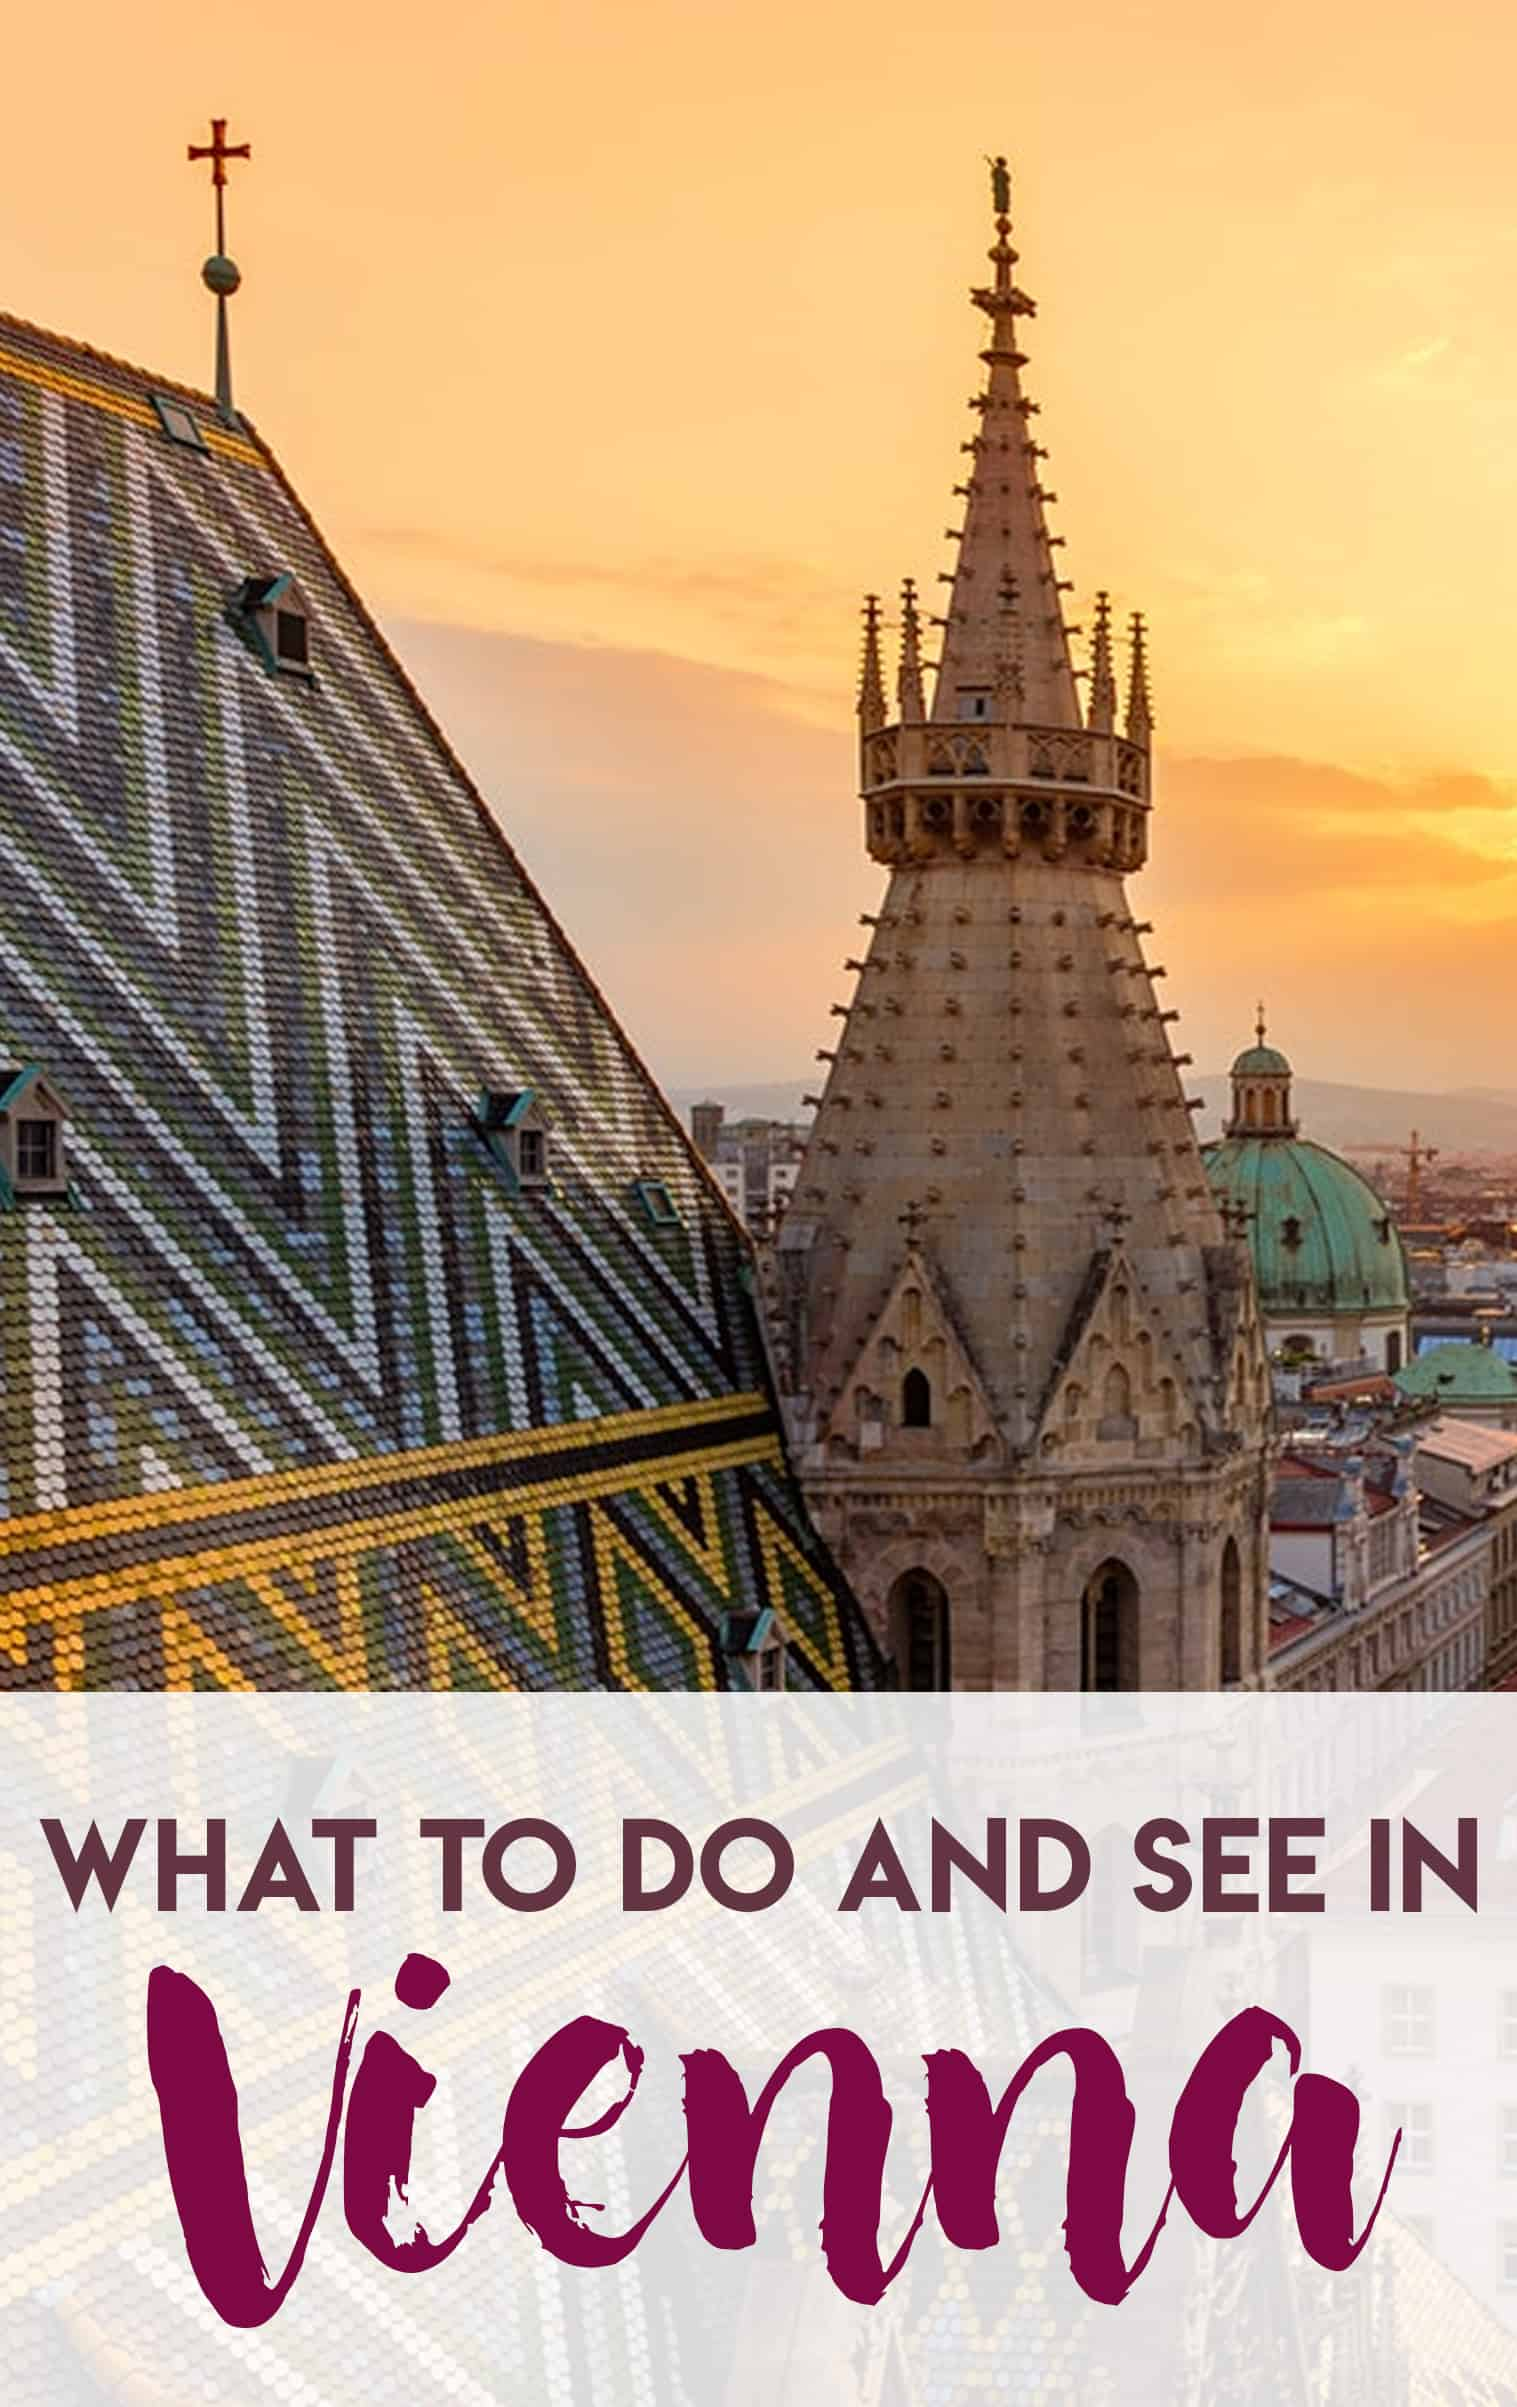 What to see and do in Vienna Austria